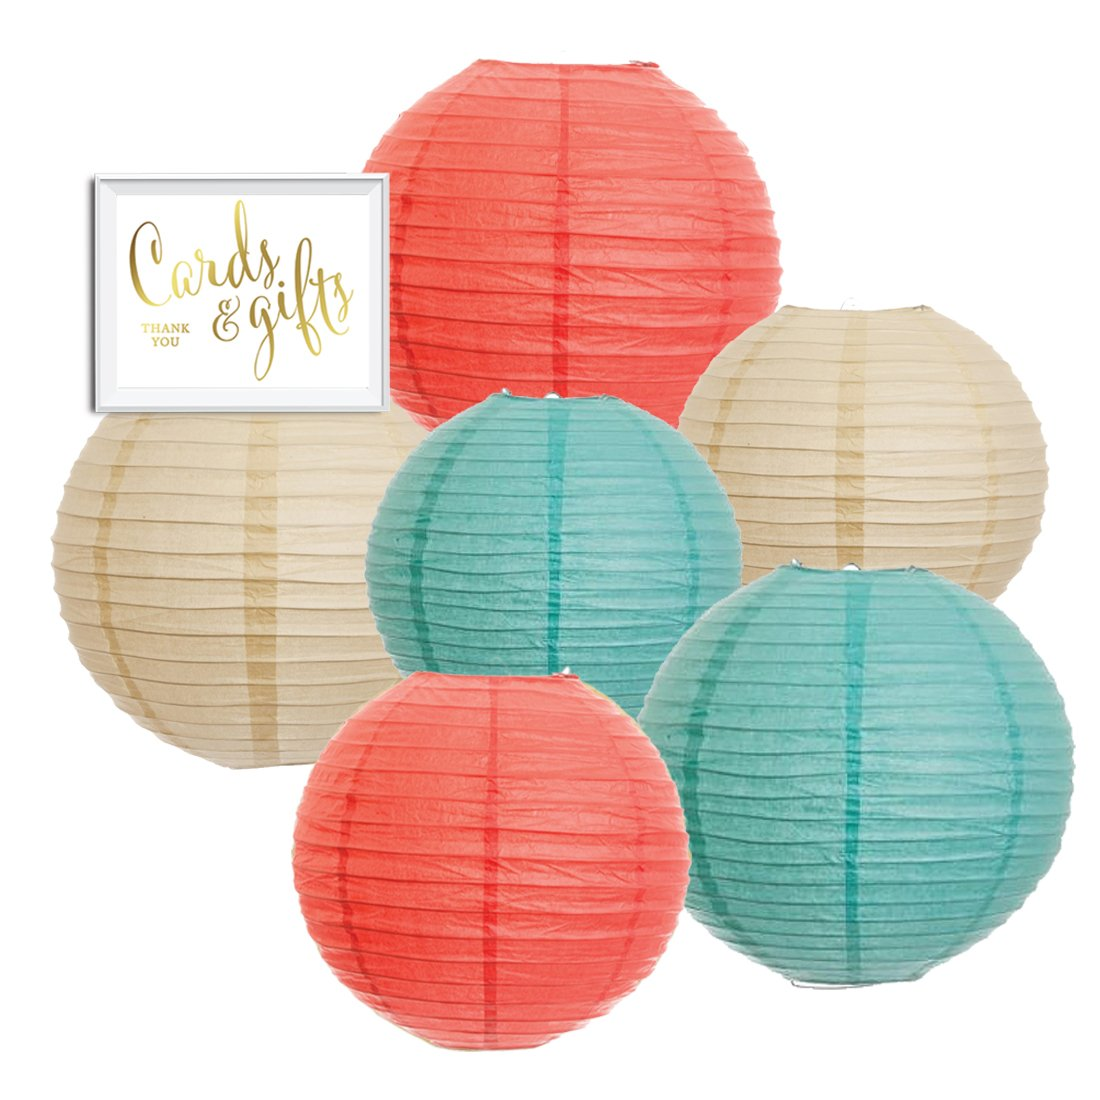 Andaz Press Hanging Paper Lantern Party Decor Trio Kit with Free Party Sign, Ivory, Coral, Diamond Blue, 6-Pack, For Peach Mint Robin's Egg Baby Bridal Shower Easter Classroom Decorations by Andaz Press